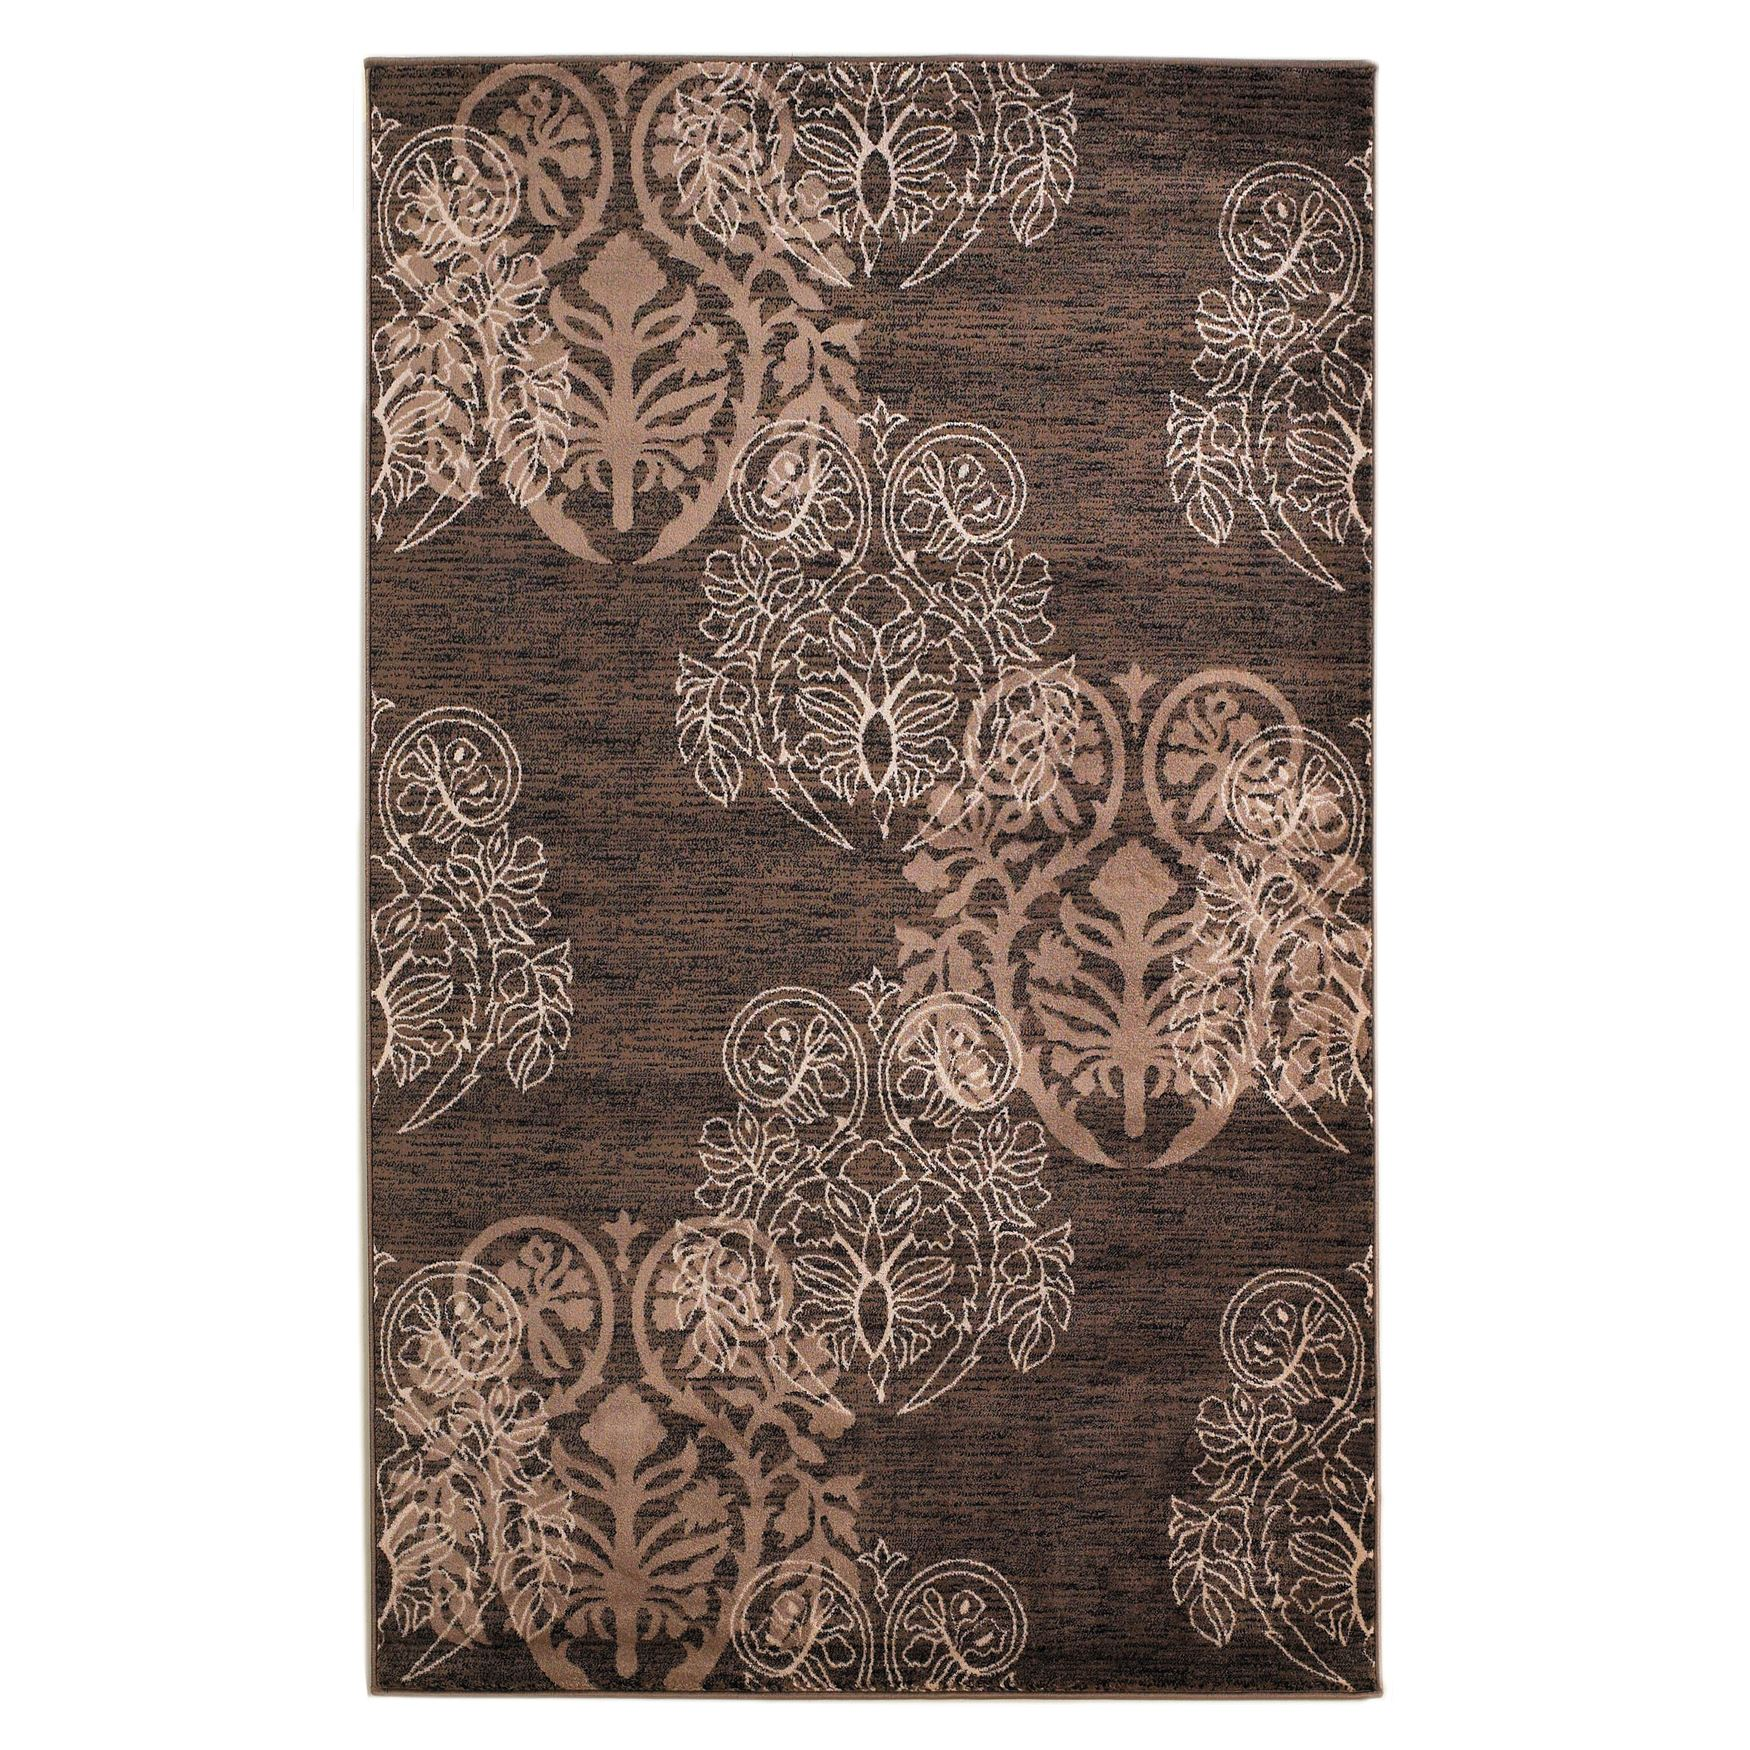 Milan Brown/Beige Area Rug Collection,